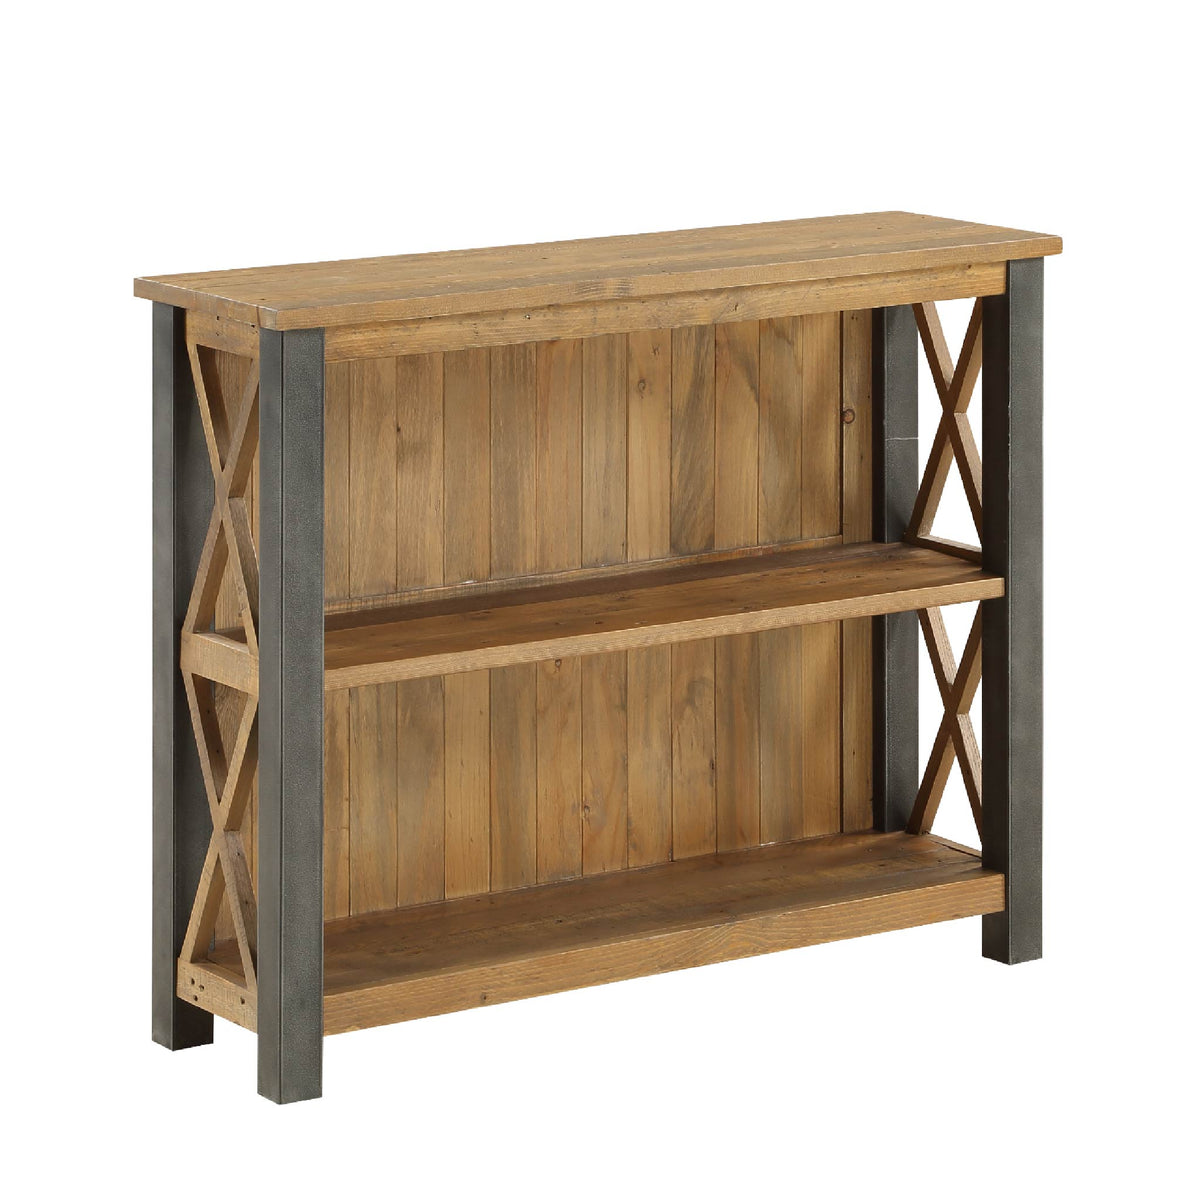 Urban Elegance Reclaimed Wood & Steel Frame Low Bookcase on white background